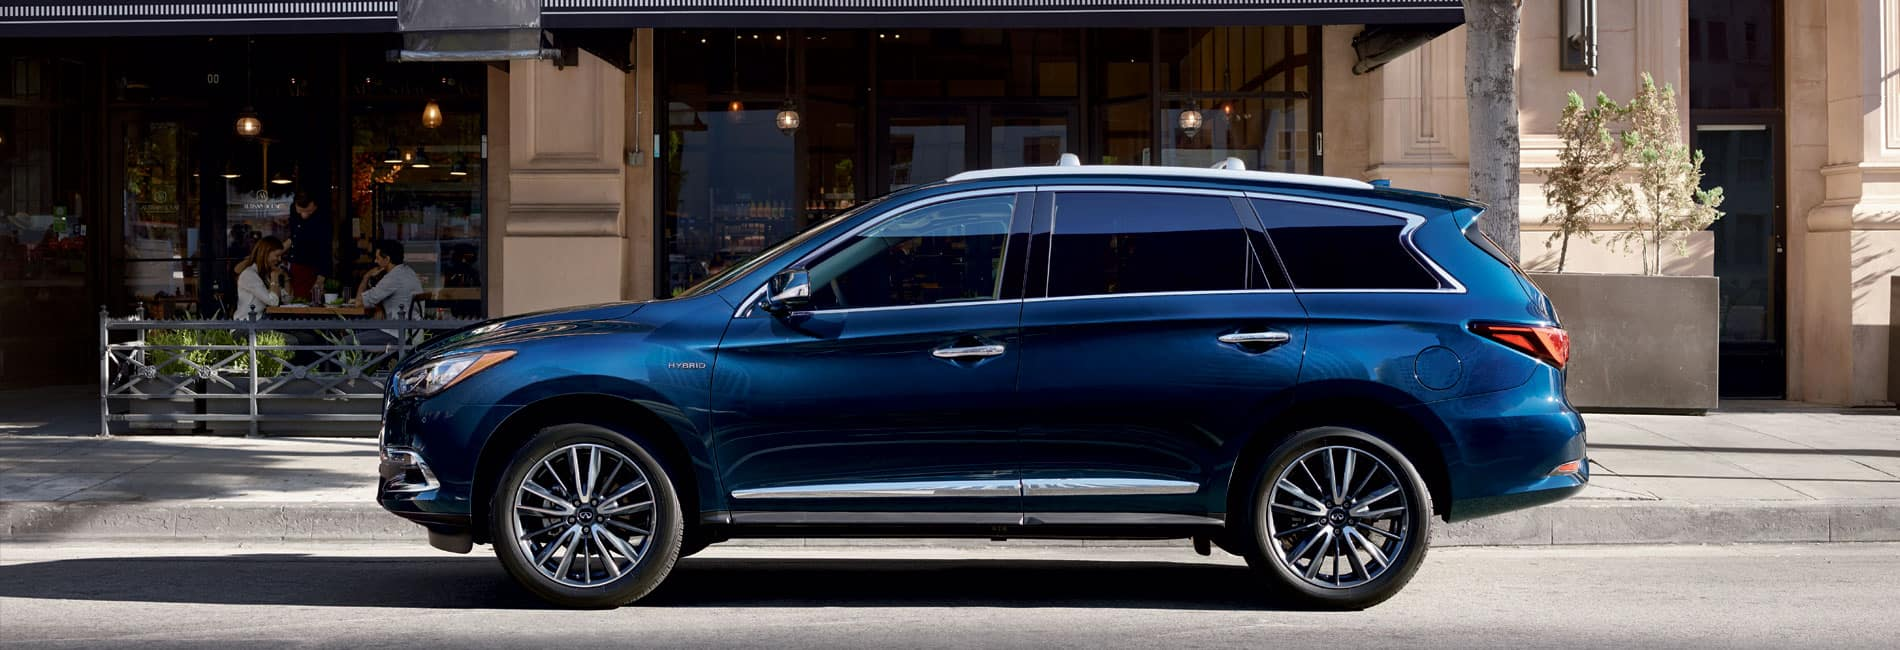 2018 INFINITI QX60 for Sale in Chicago, IL